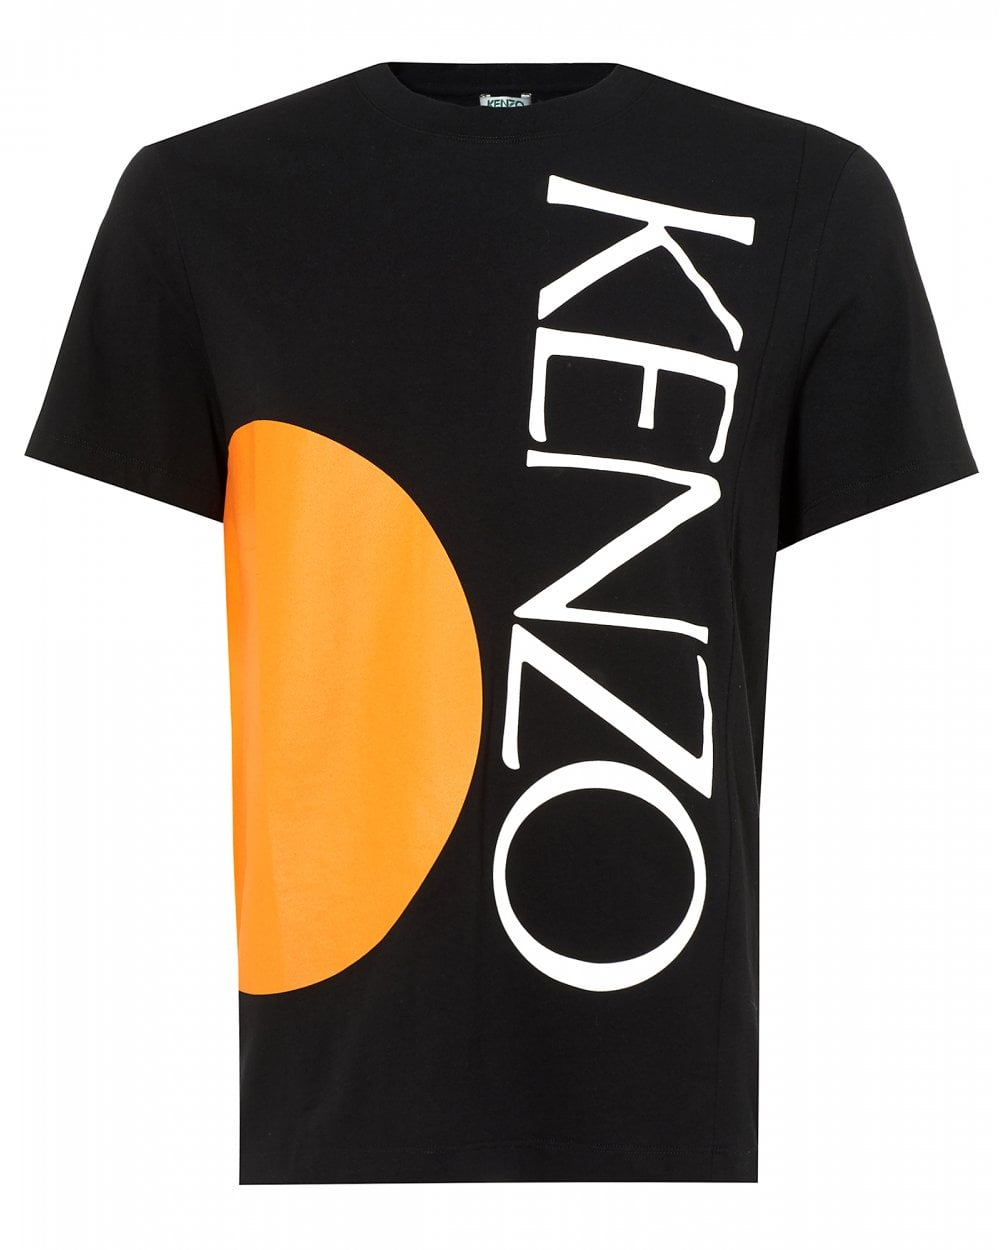 67e9d323b8 Mens Square Logo T-Shirt, Orange Circle Black Tee